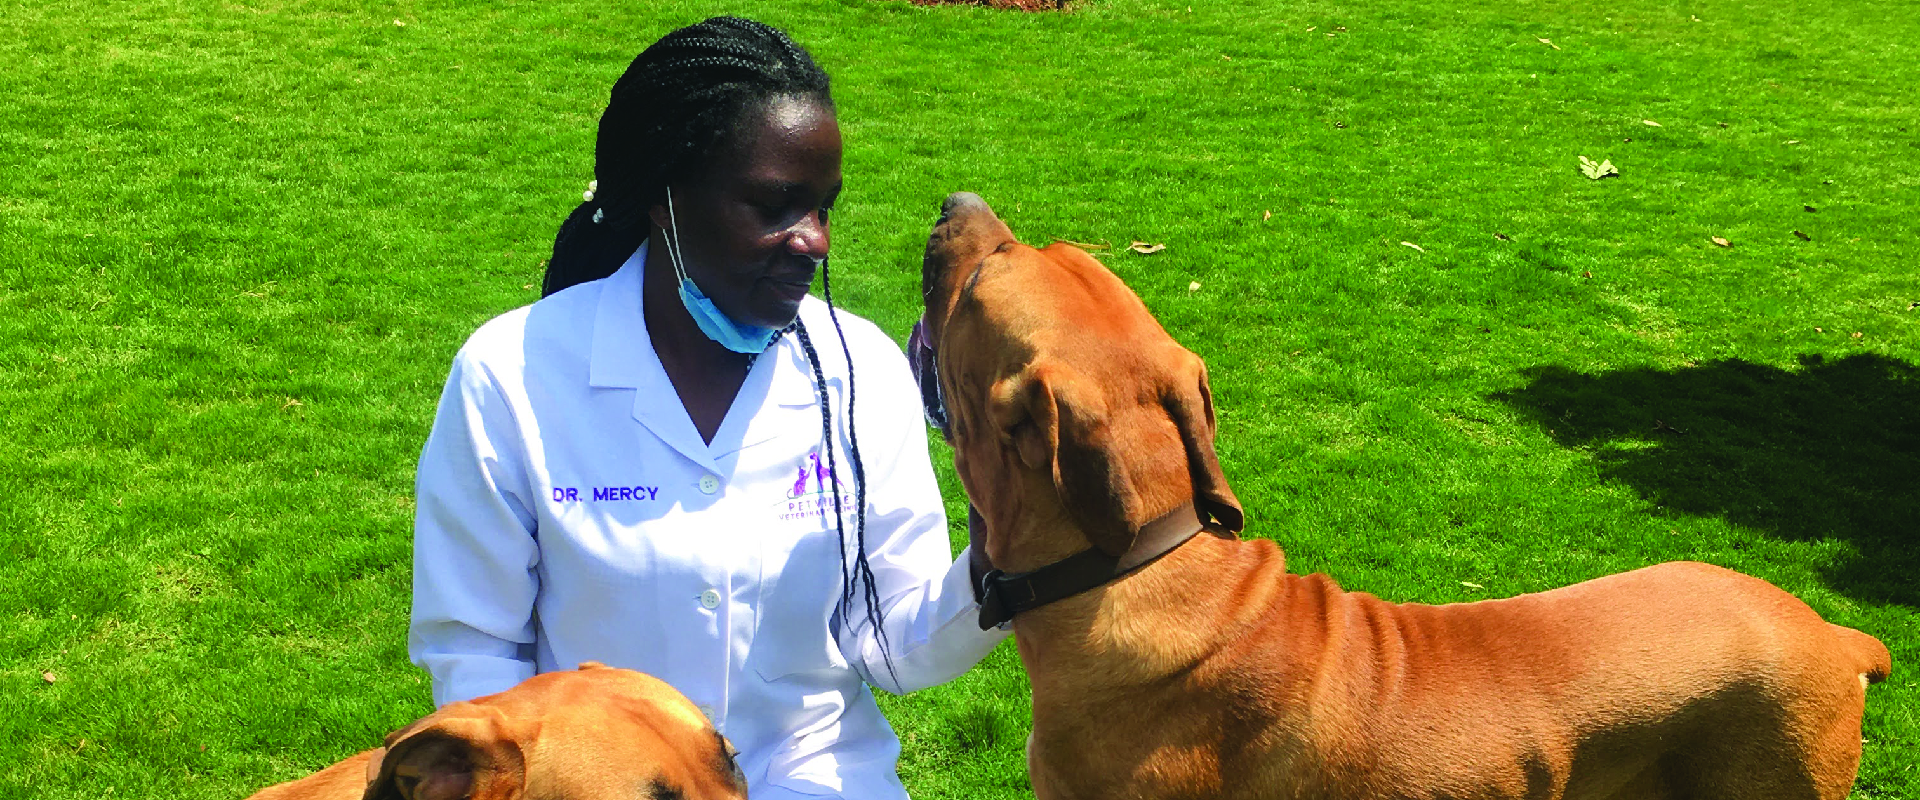 we are committed to providing veterinary care for your pets